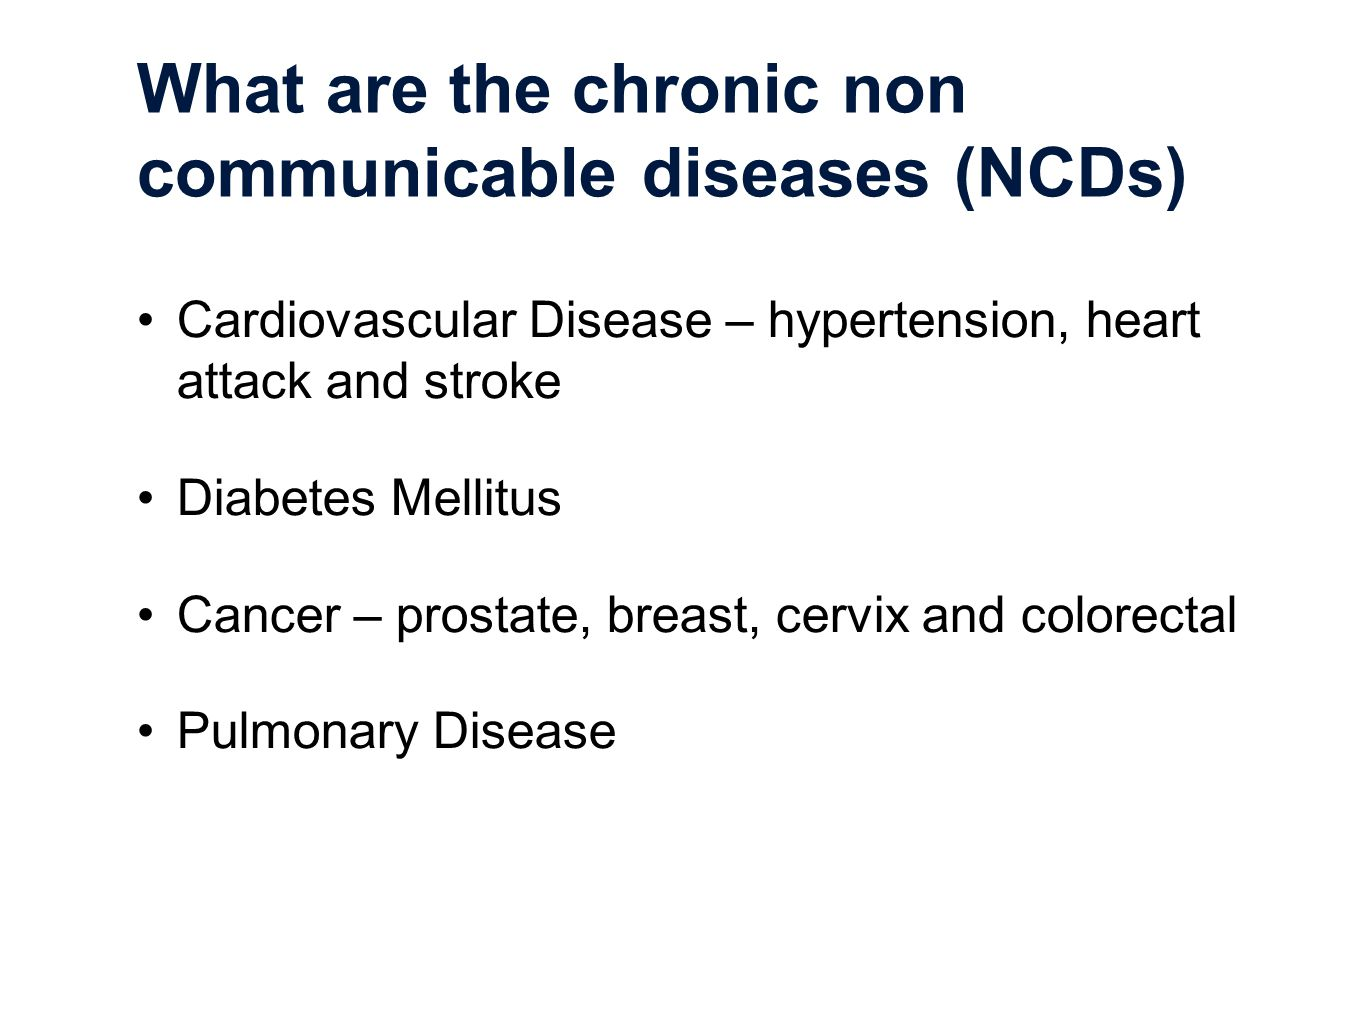 """chronic non communicable diseases cncd Chronic non-communicable diseases (ncds) are the leading causes of human   in jamaica, the burden of cncd risk factors appears to be increasing"""" [25."""